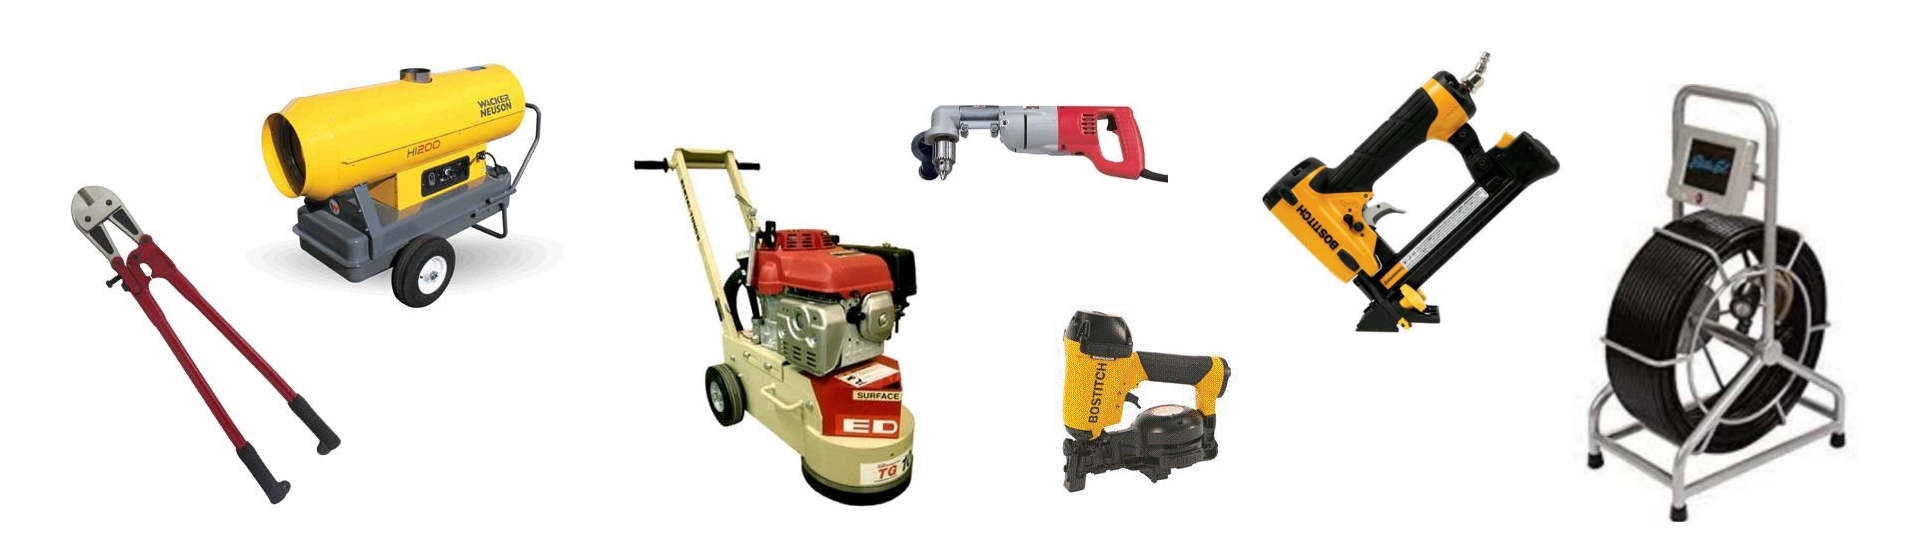 Contractor Equipment Rentals in Santa Clara County, Santa Cruz County, Monterey Bay & the Silicon Valley